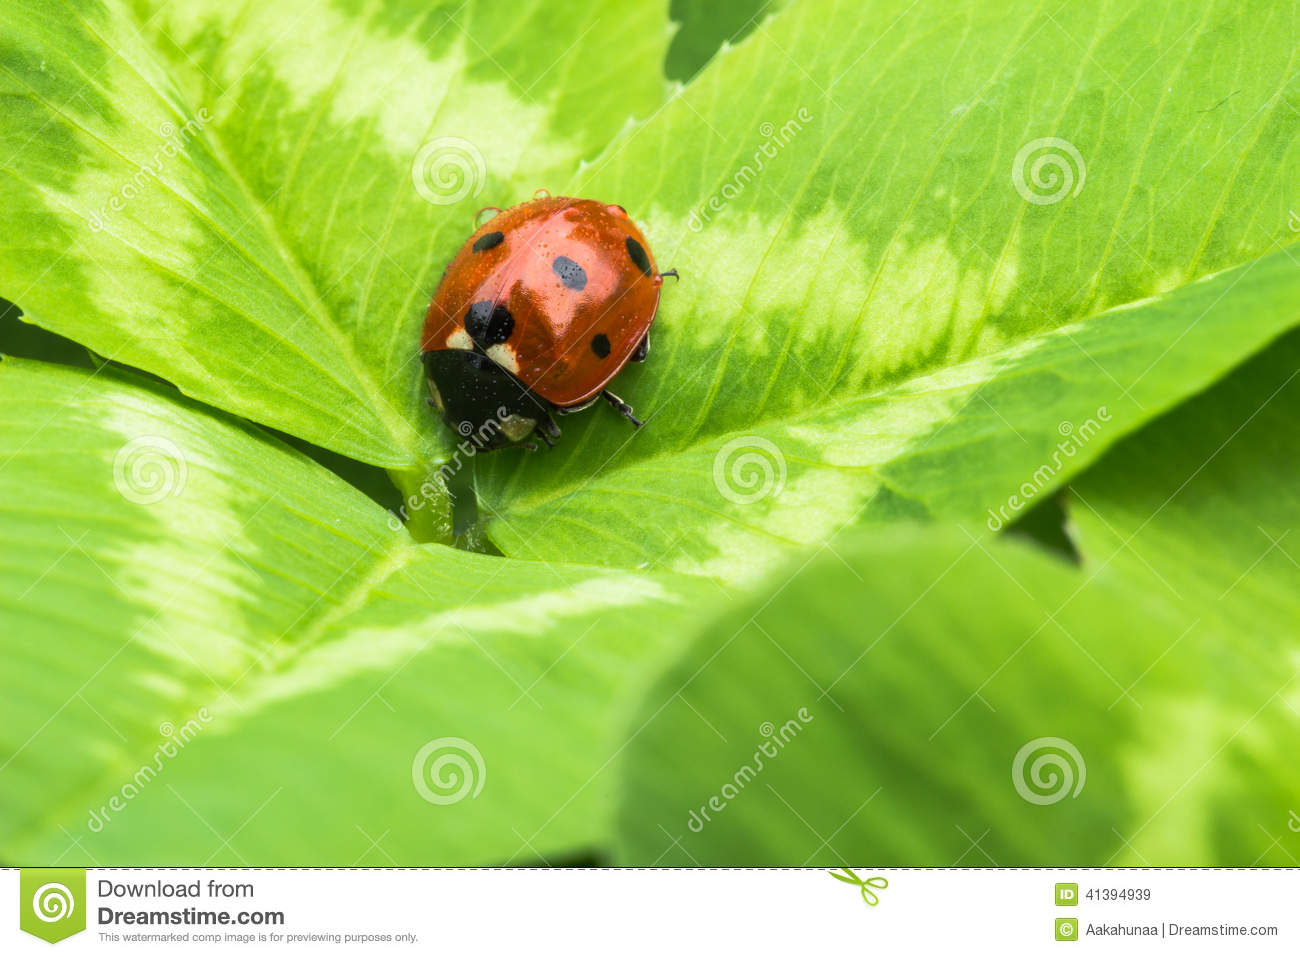 Finding Some Spots Of Bright Color At >> The Beetles Stock Image Image Of Close Environment 41394939